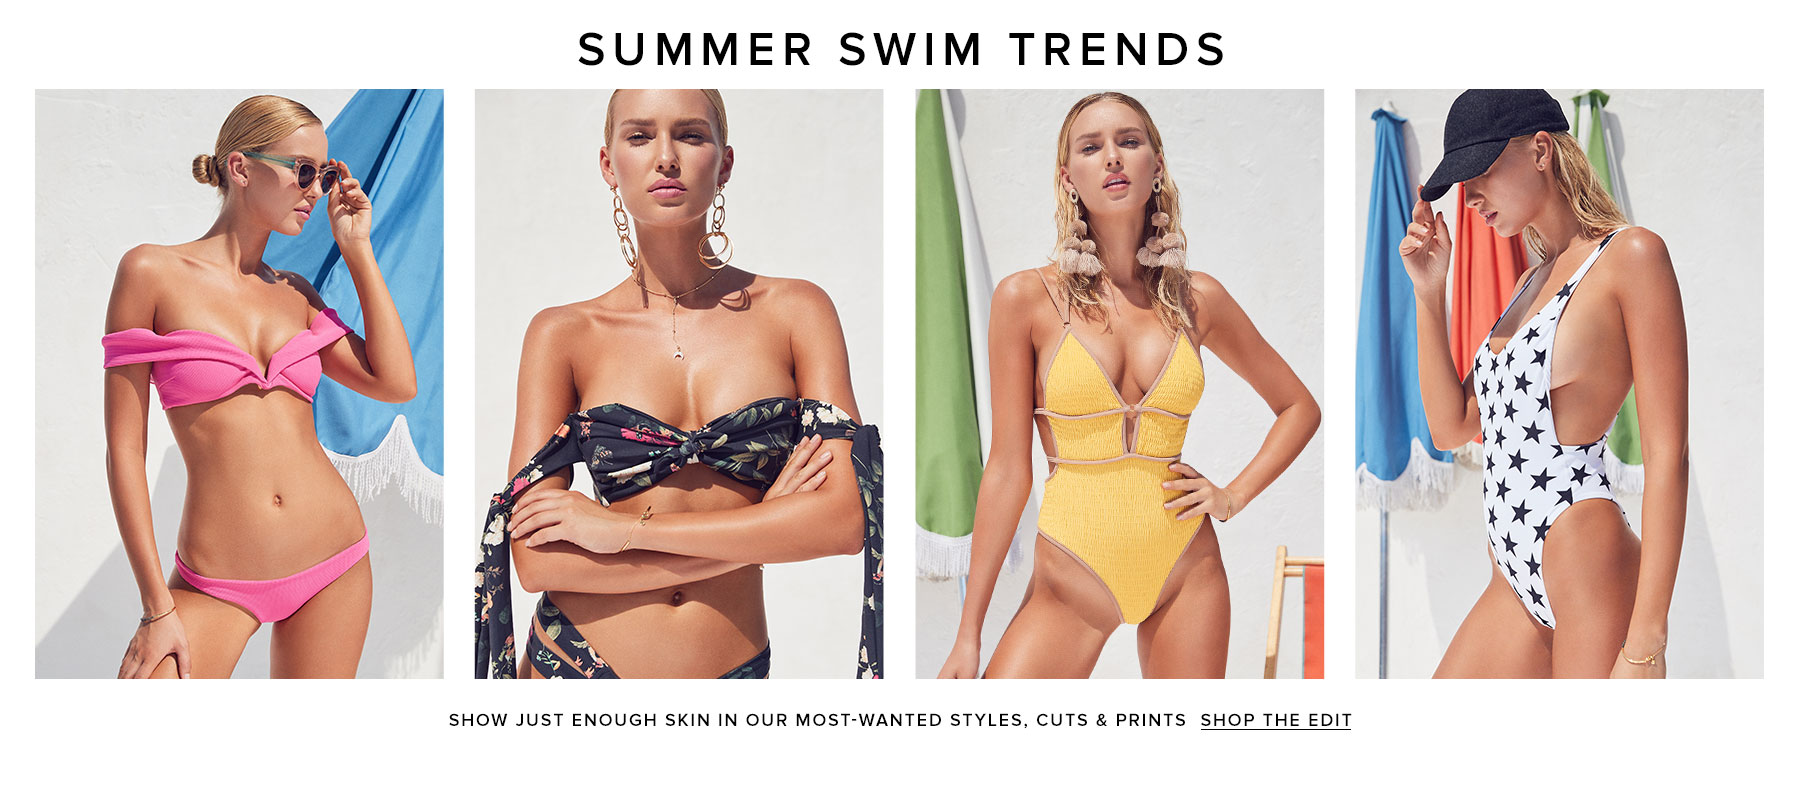 Summer Swim Trends. Show just enough skin in our most-wanted styles, cuts & prints. Shop Best-Selling Swim.